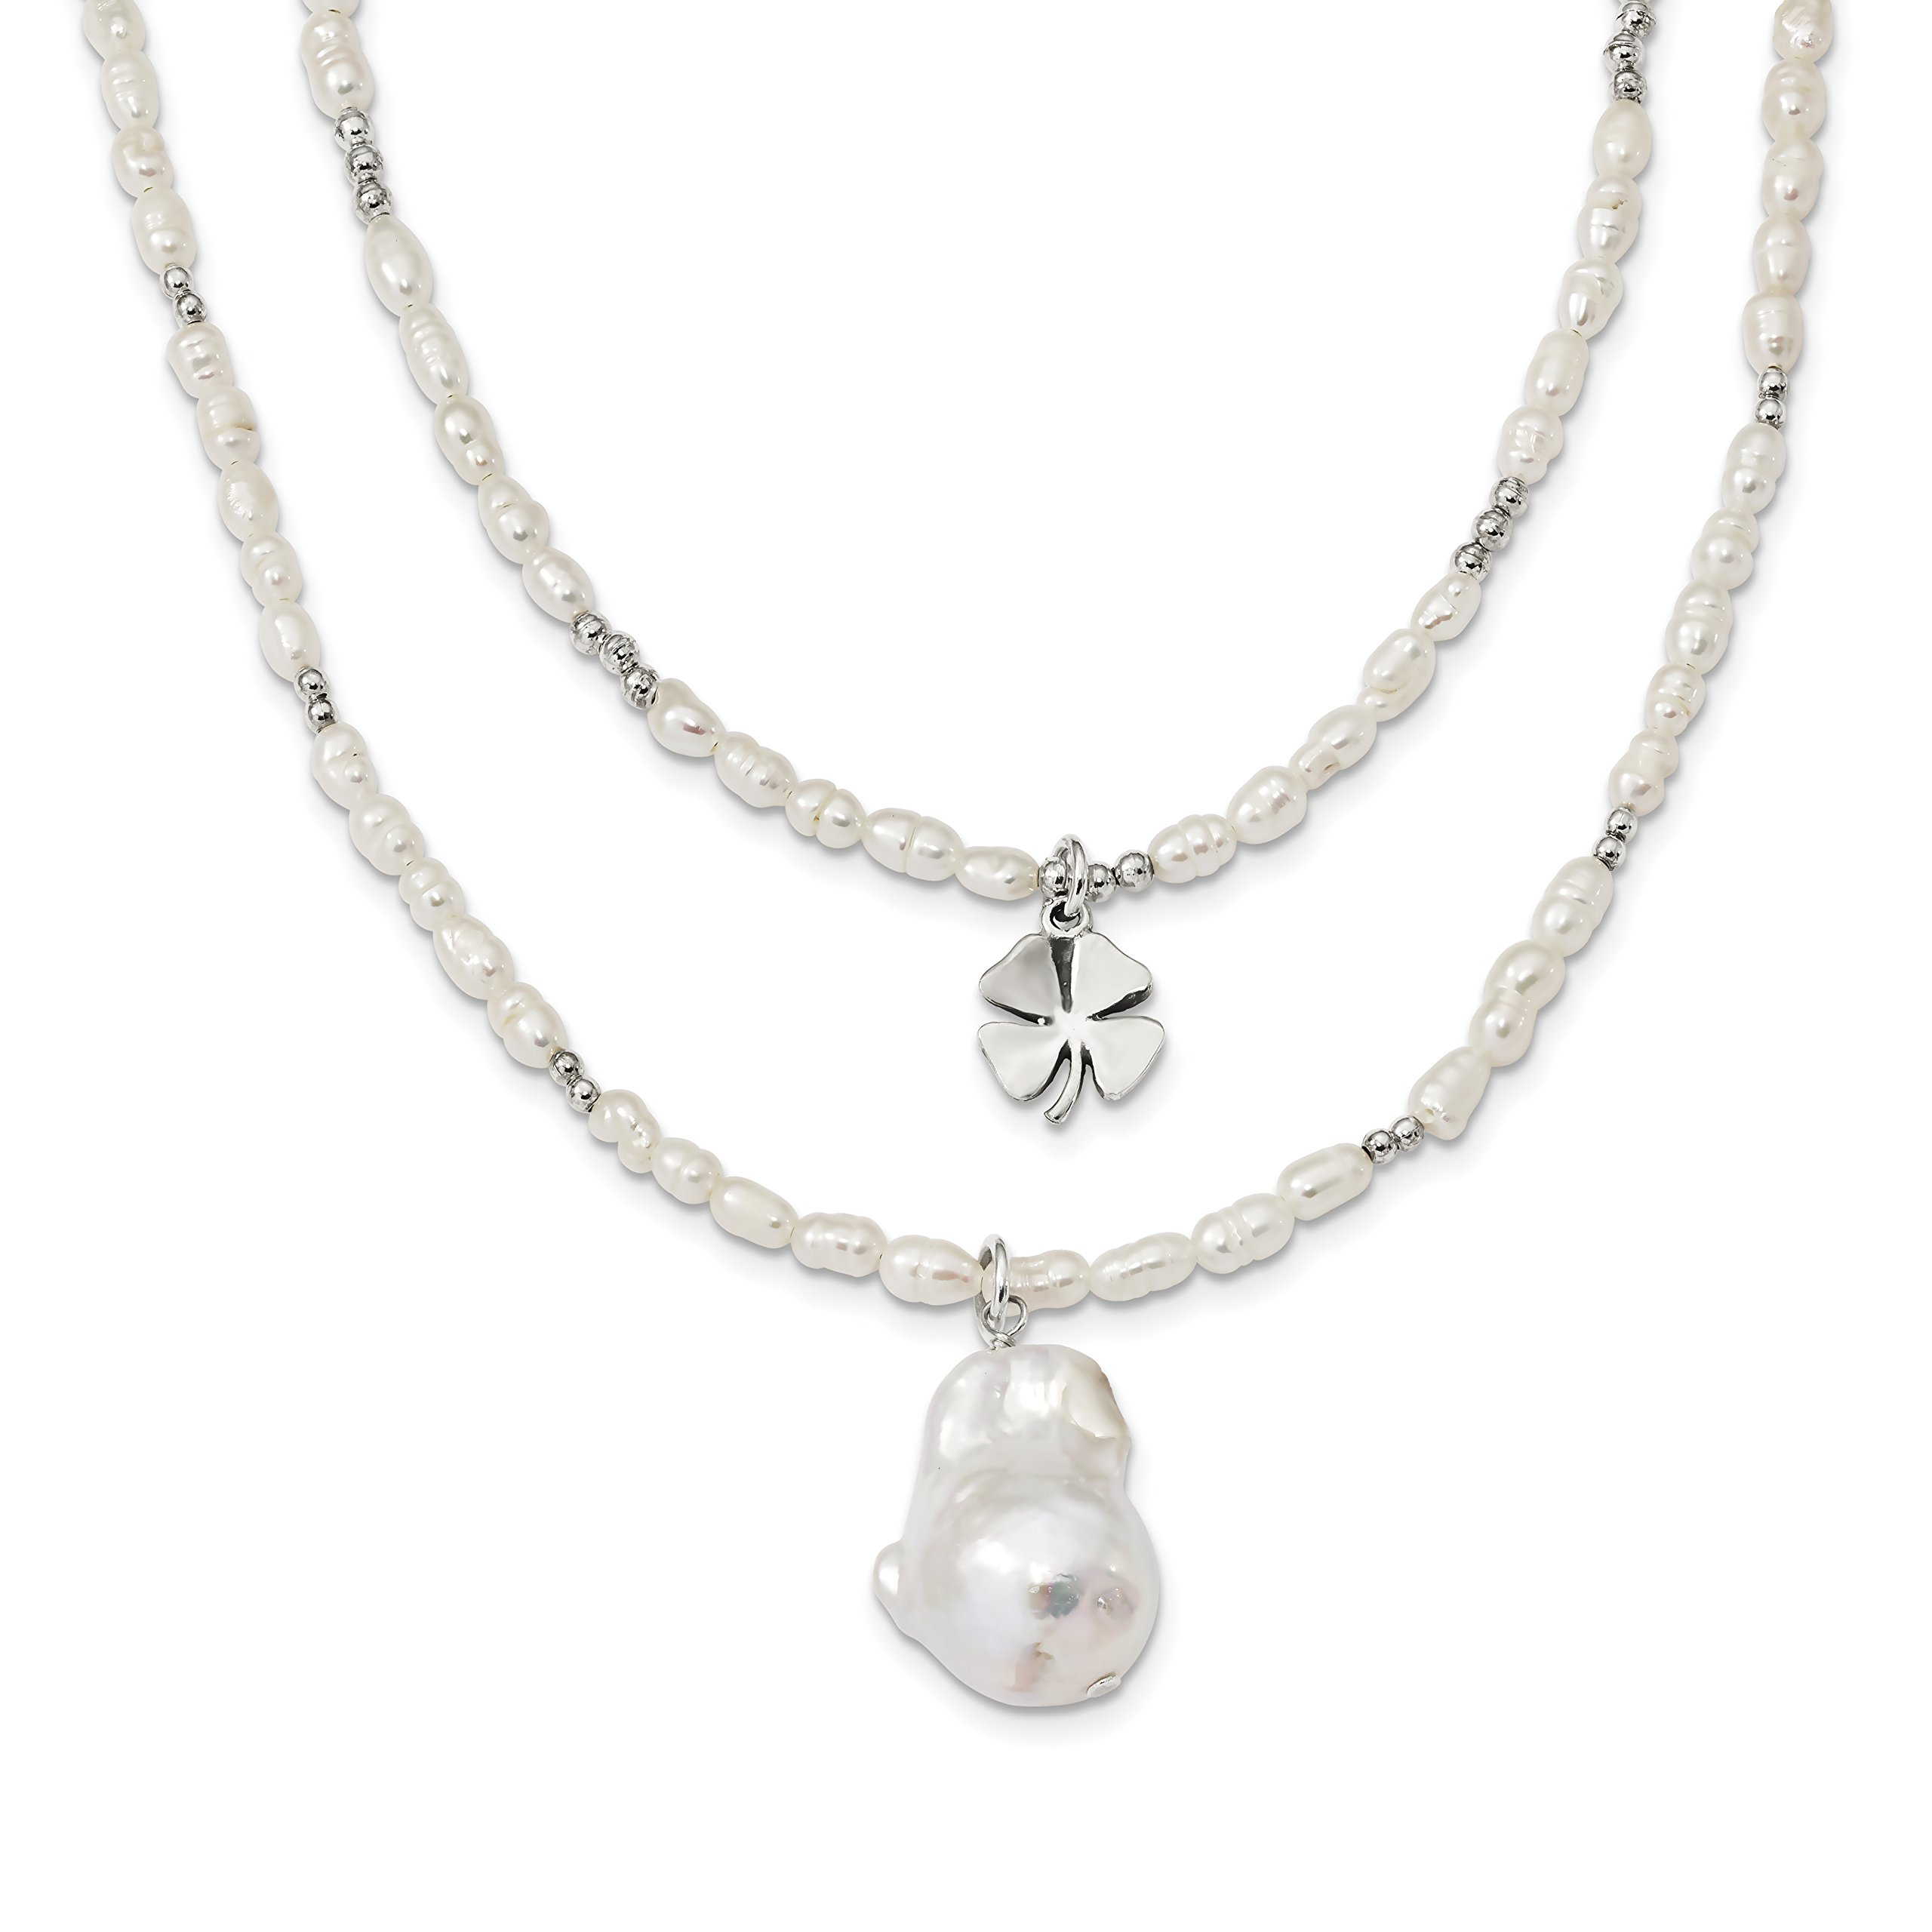 ICE CARATS 925 Sterling Silver Freshwater Cultured Pearl 2 Strand Clover Inch Extension Chain Necklace Fine Jewelry Gift Set For Women Heart